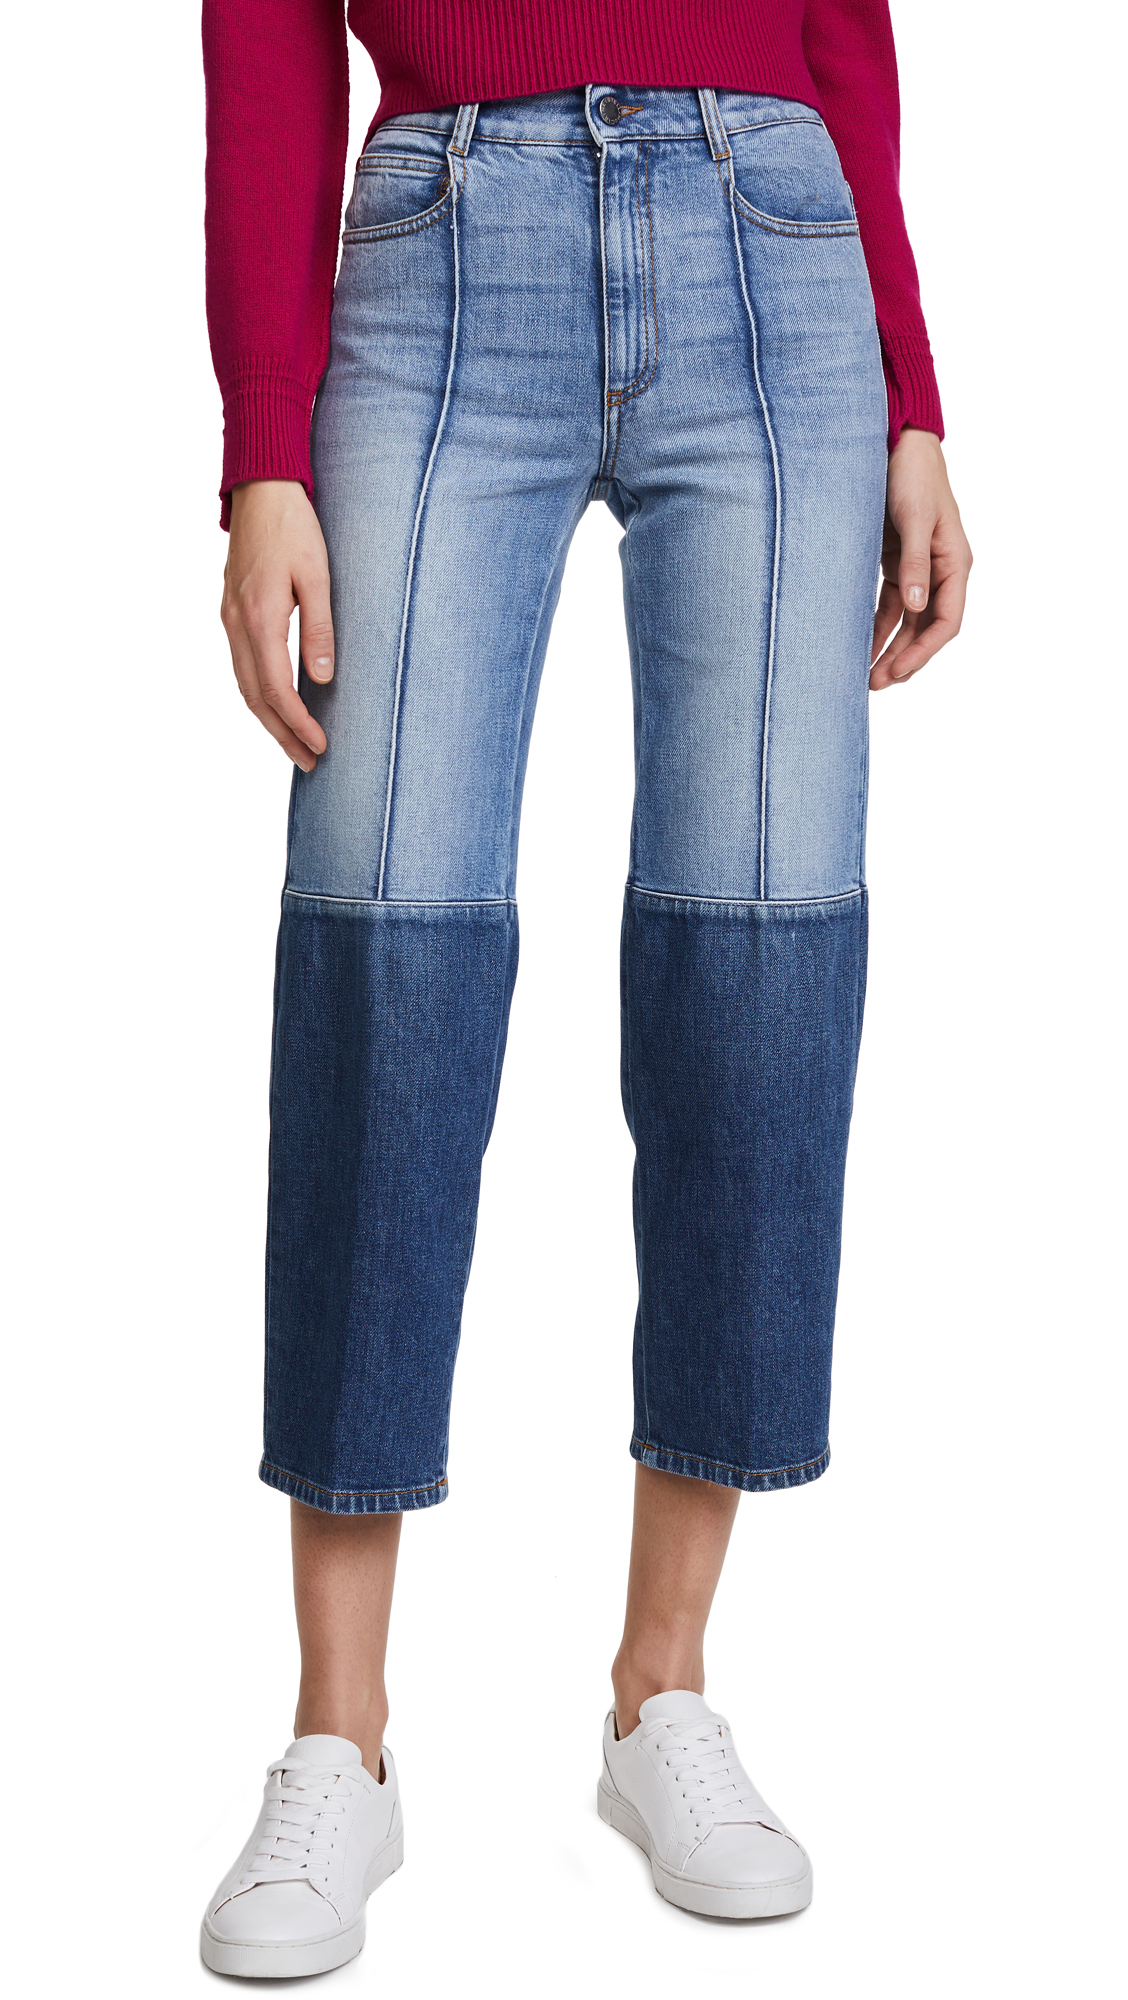 Stella McCartney The High Waist Two Tone Jeans - Blue